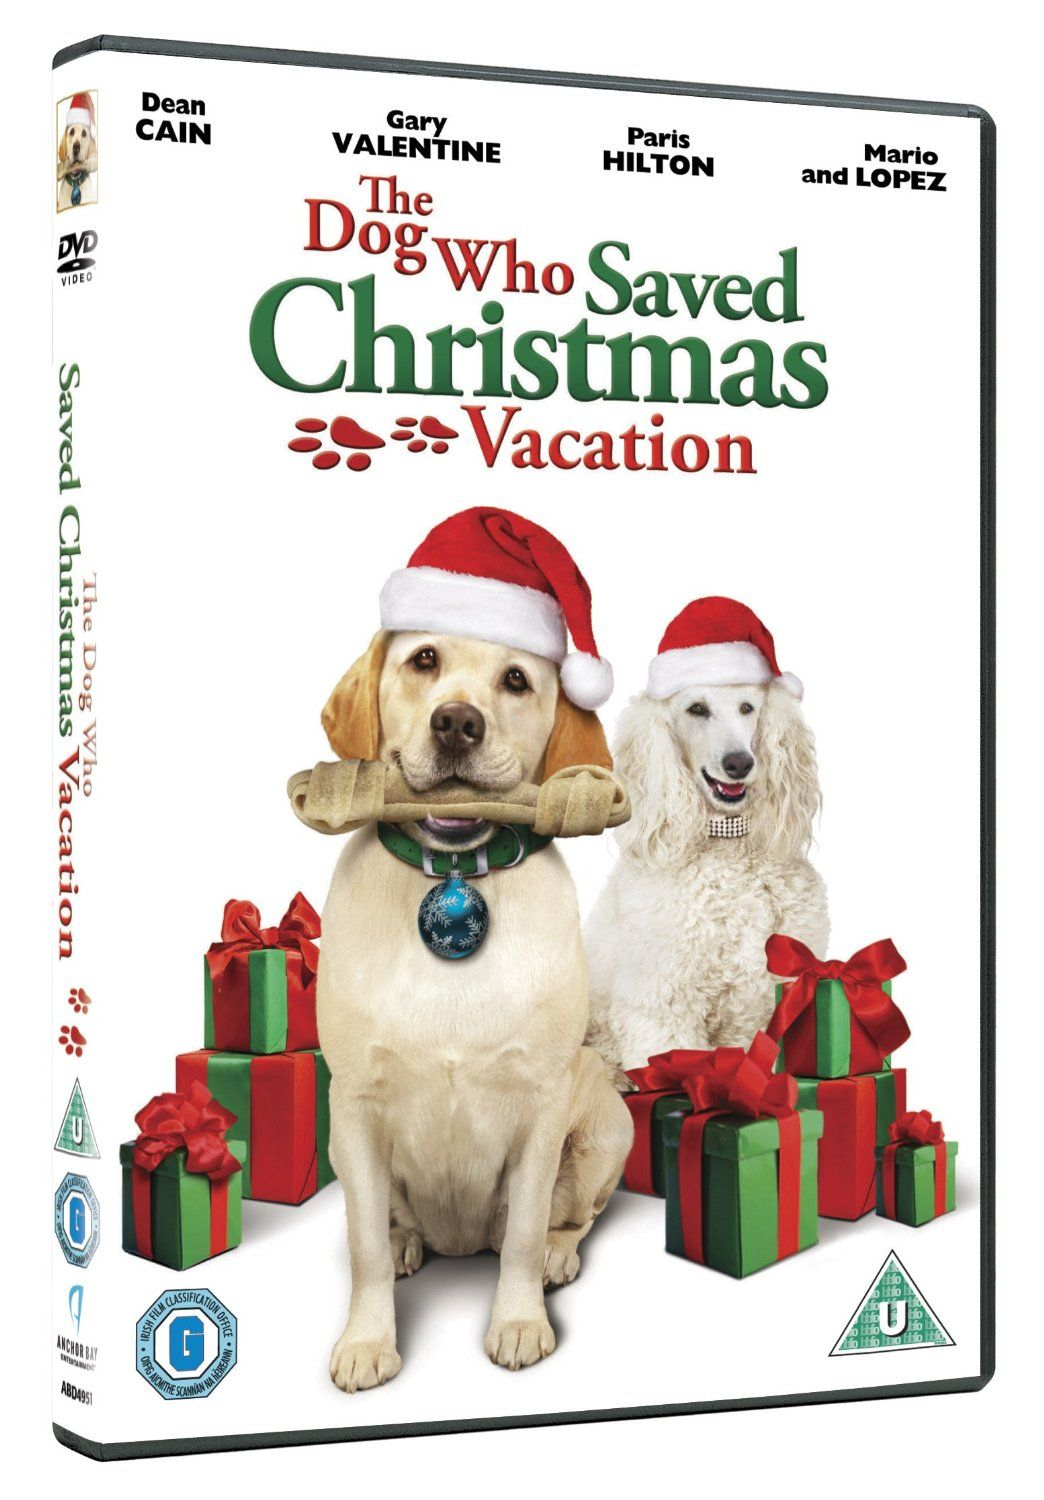 The Dog Who Saved Christmas Vacation [DVD]: Amazon.co.uk: Dean Cain ...